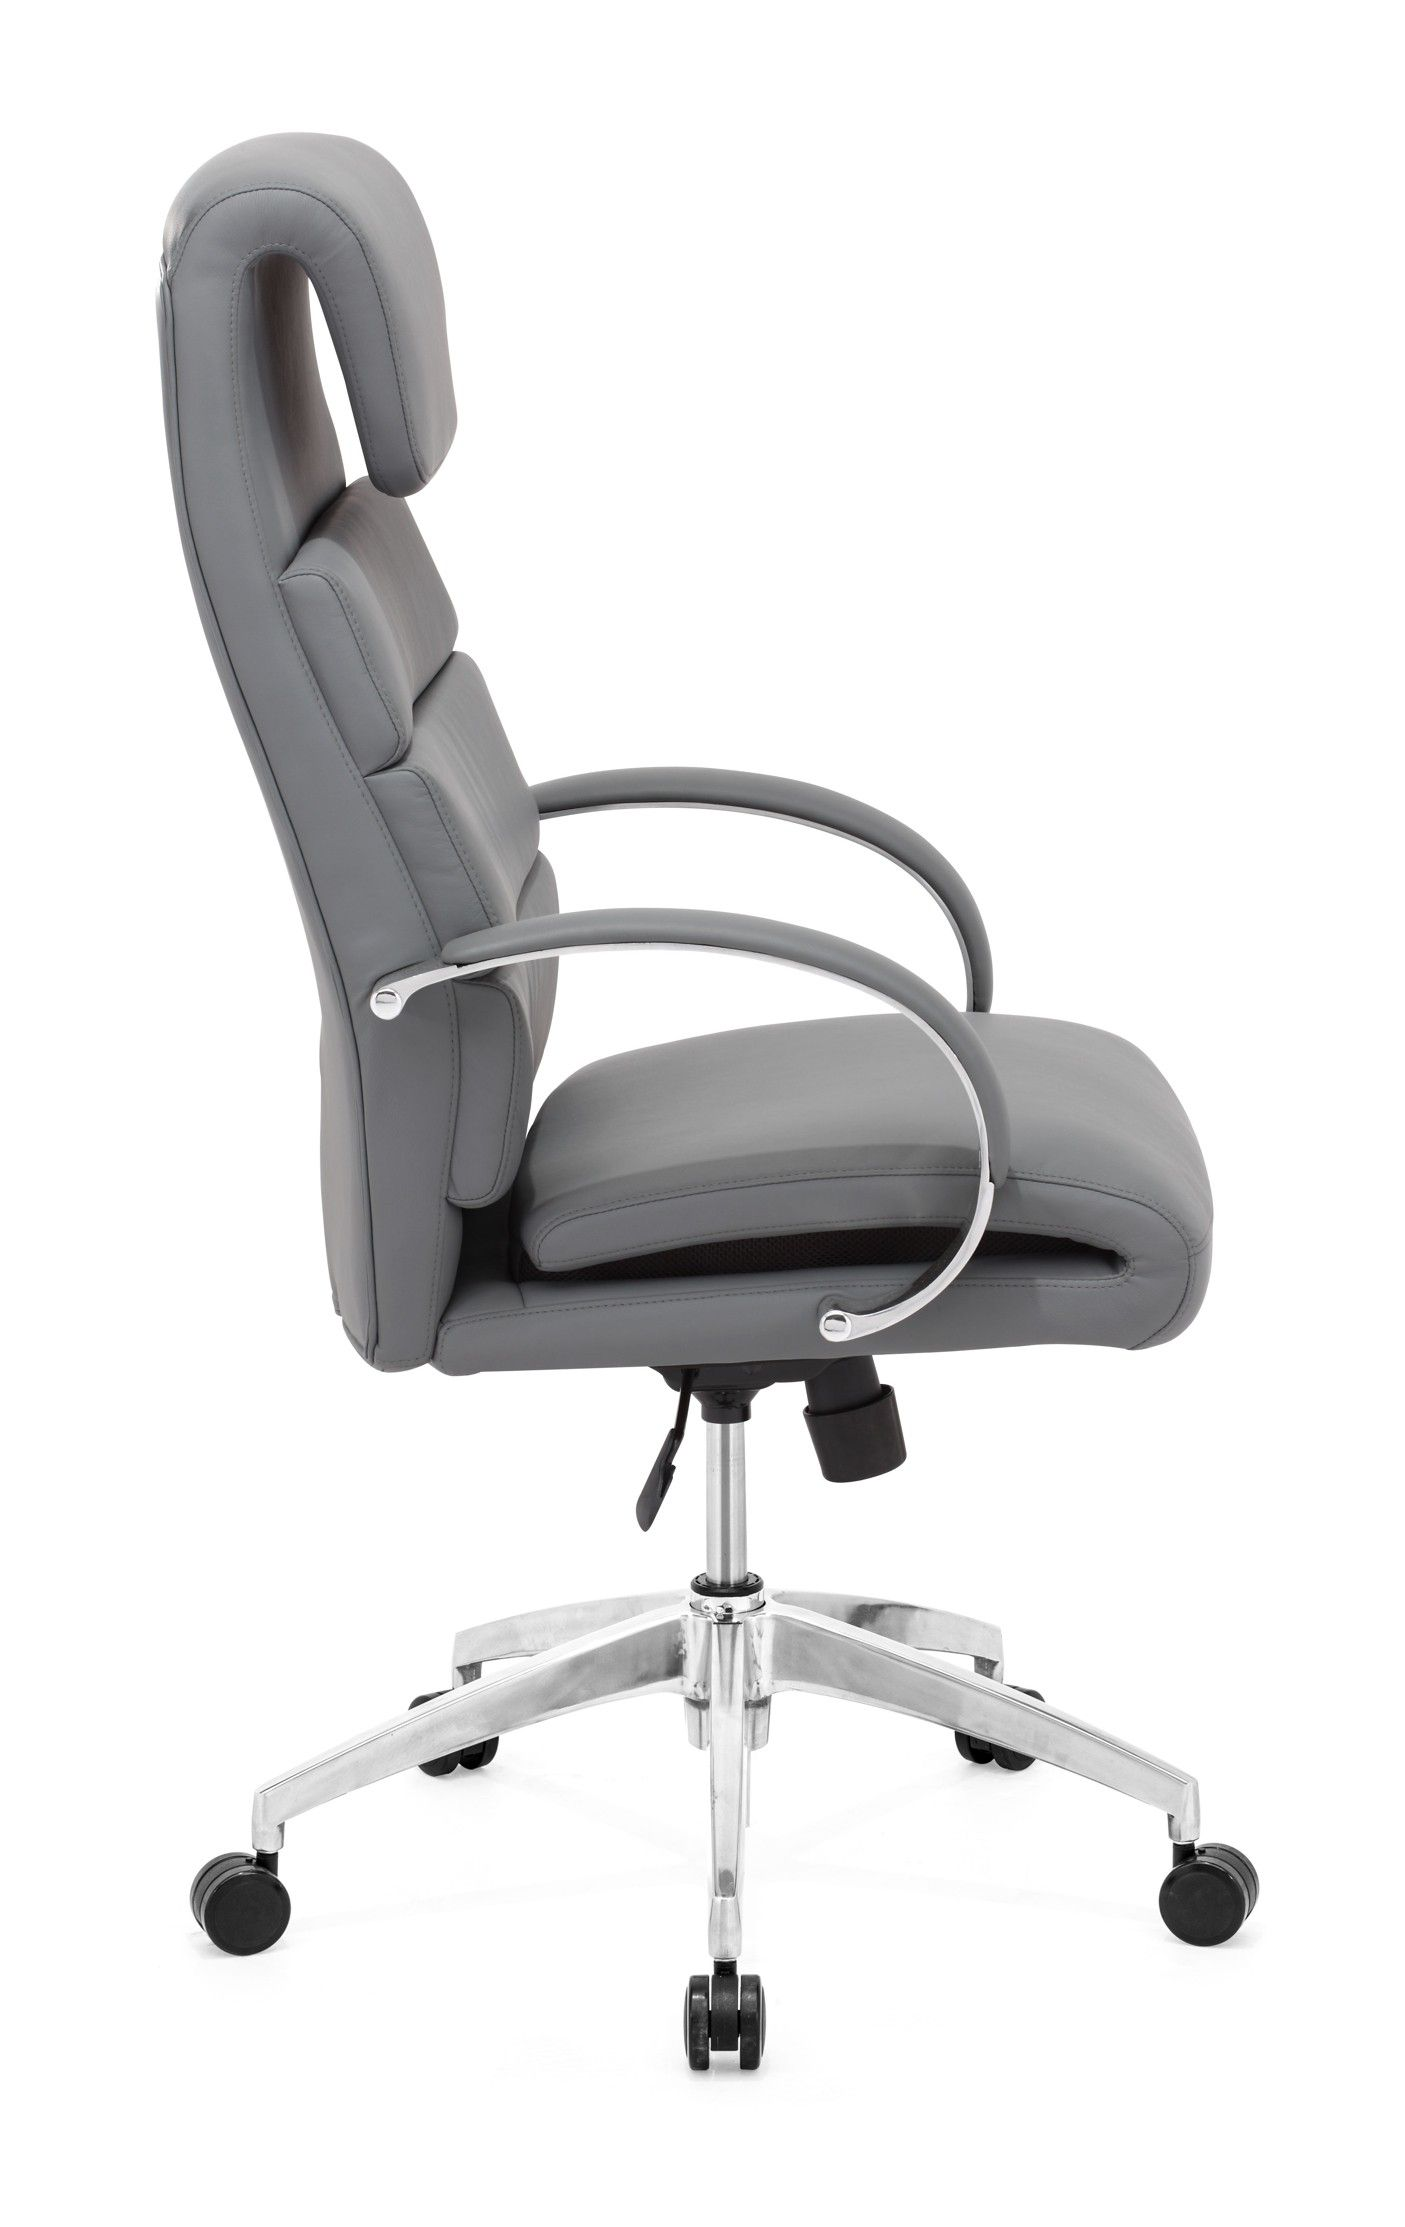 Pin By Good Furniture On Office Chair In 2019 Grey Desk